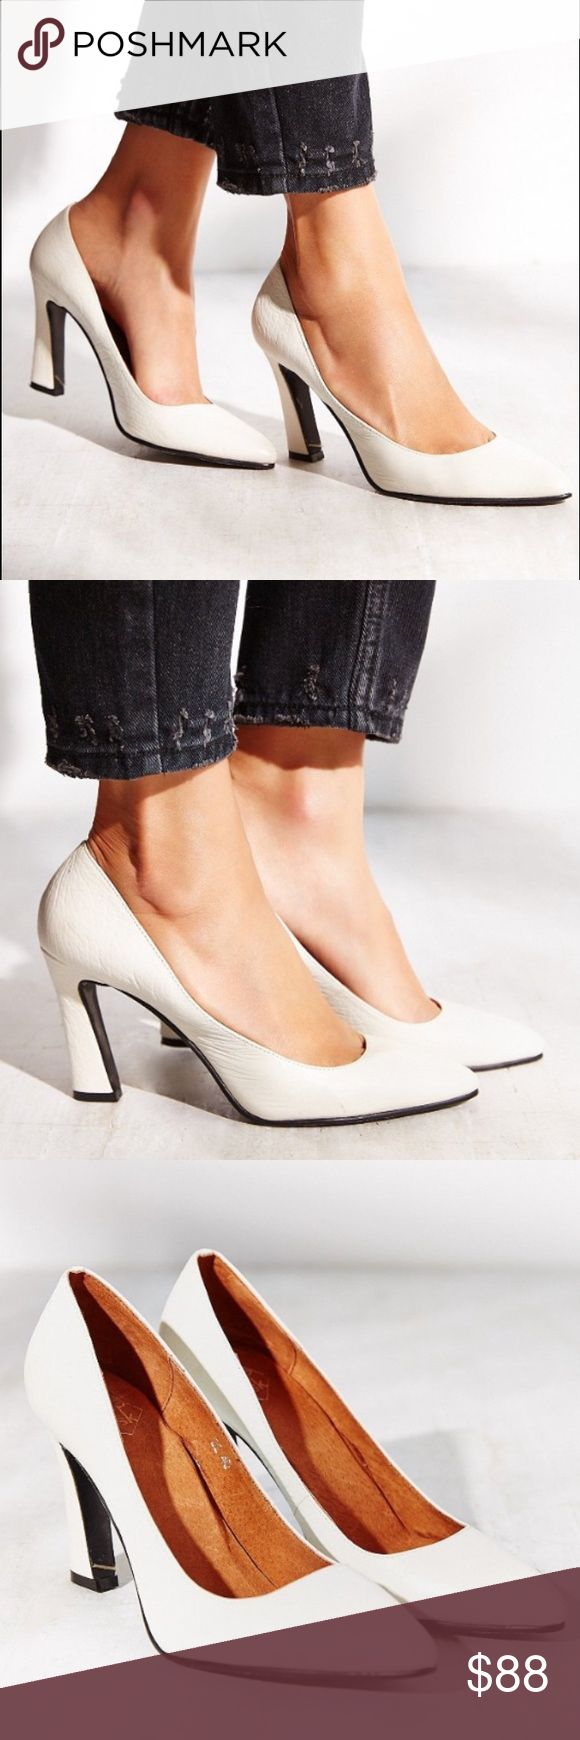 Kobe Husk White Titan Leather Heels Modern and chic, the classic heel reimagined in a fashion forward silhouette by quality shoe label Kobe Husk. Pebbled white leather upper. Like new condition. Size 38 fits like a 7.5. Originally bought from Urban Outfitters. Urban Outfitters Shoes Heels